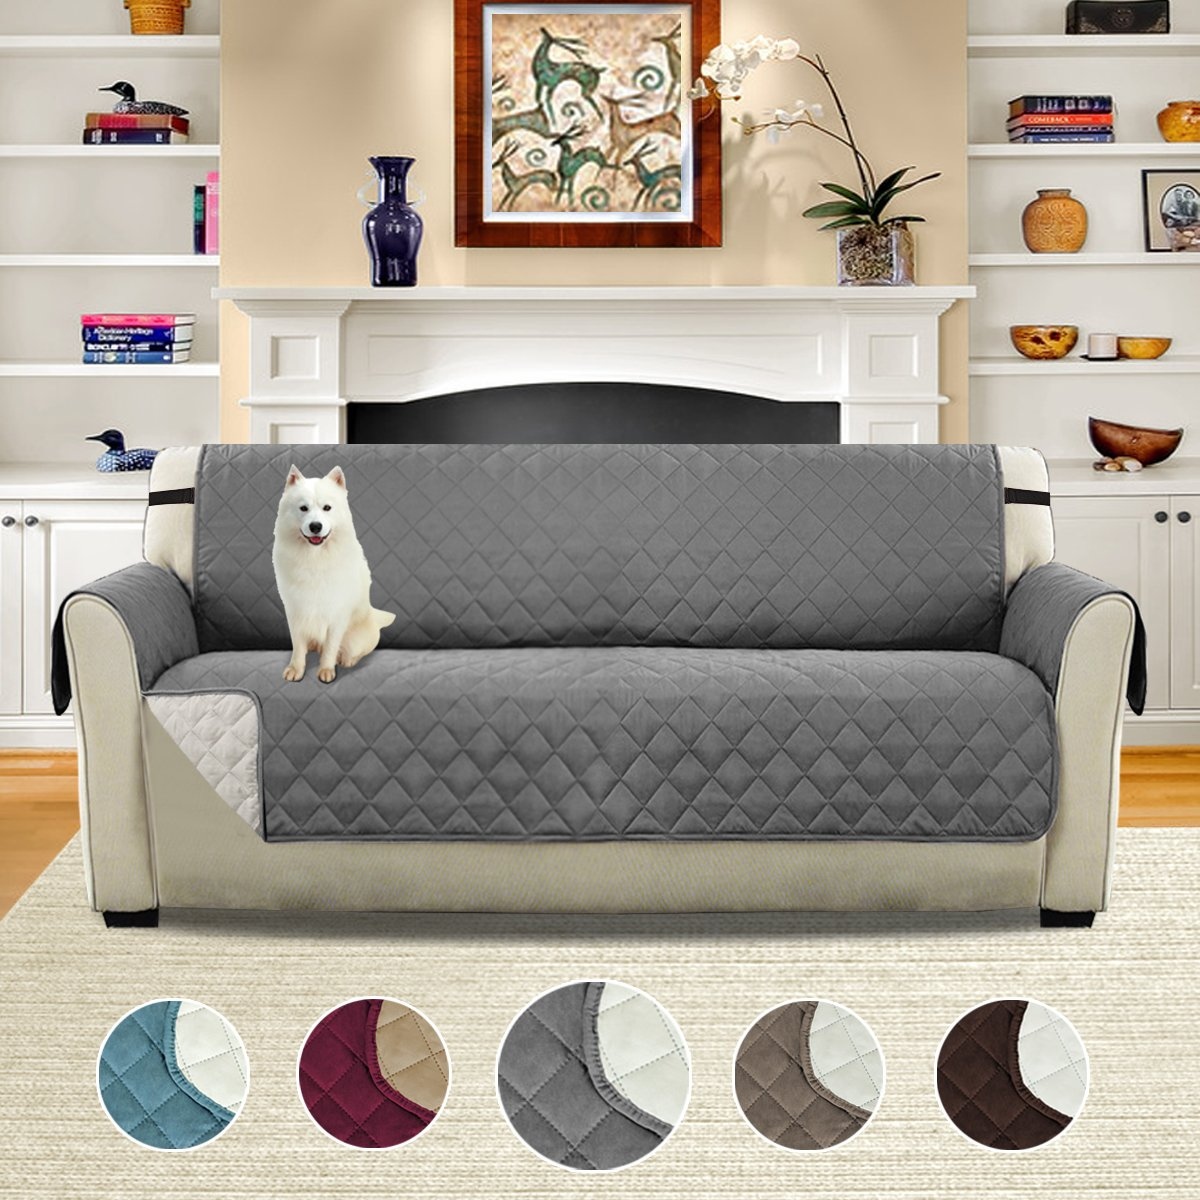 H.VERSAILTEX Luxurious Reversible Quilted Furniture Protector, Stay in Place with Adjusts Straps Microfiber Soft and Water-repellent (Sofa: Grey/Beige)-75'' X 110'' by H.VERSAILTEX